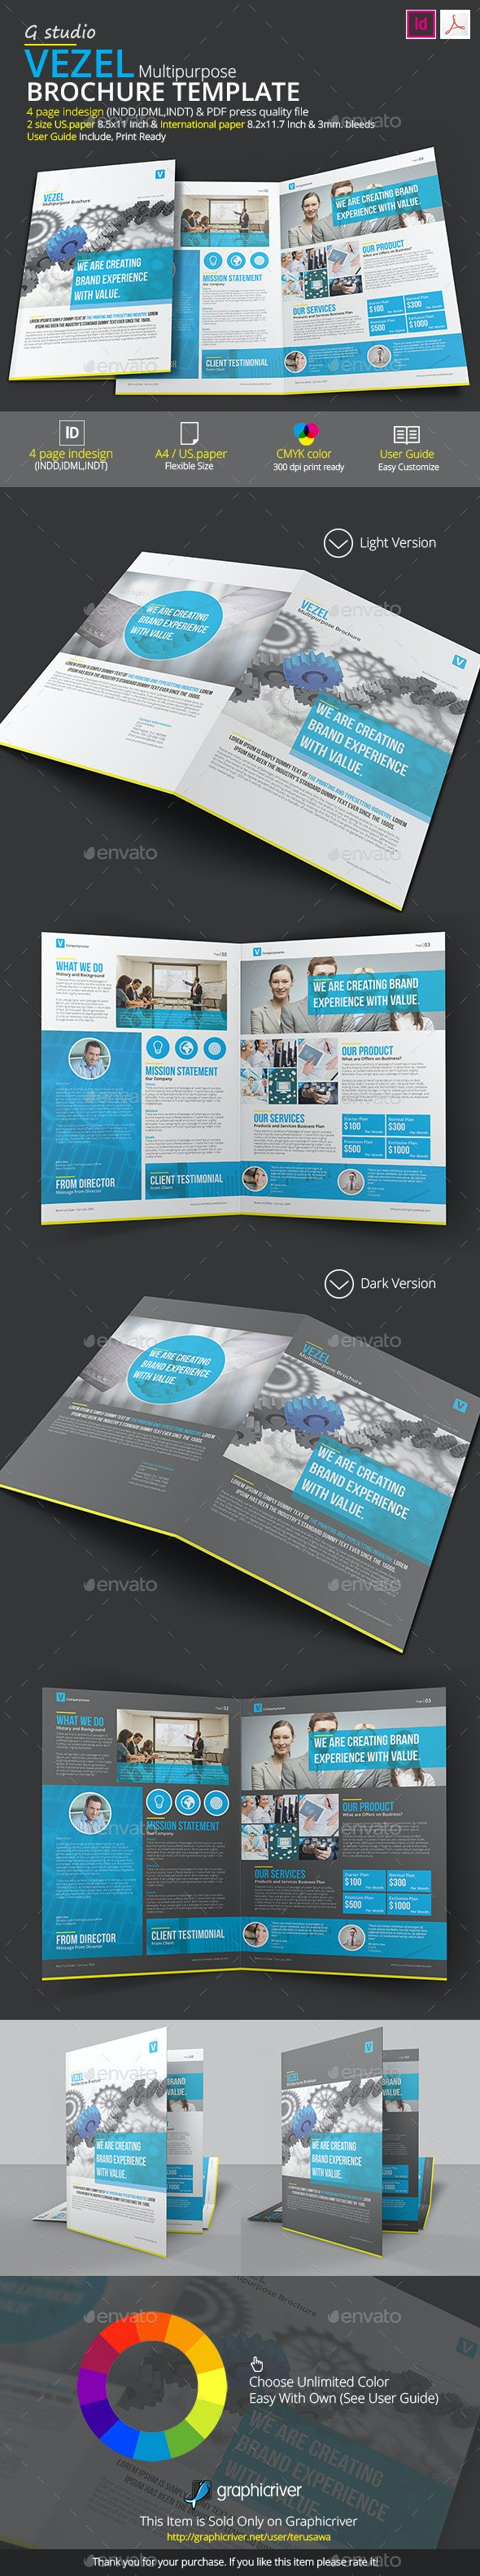 Vezel Brochure Template - Corporate Brochures